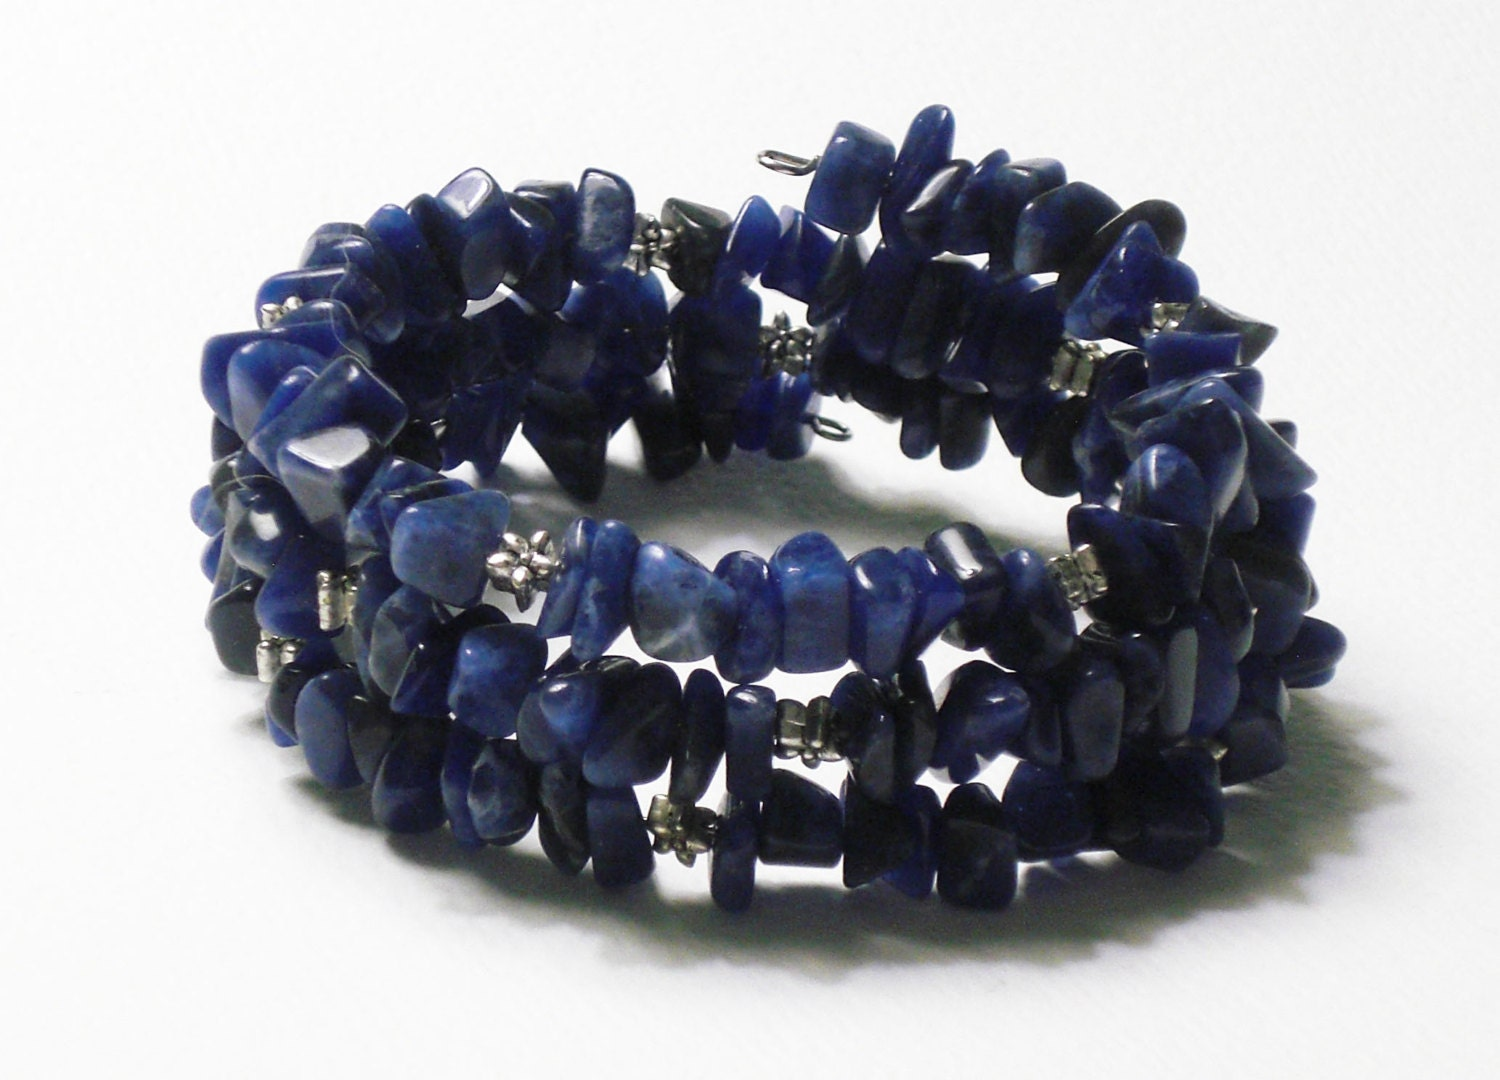 Denim blue sodalite gemstone chip claspless wrap bracelet - Drakestail